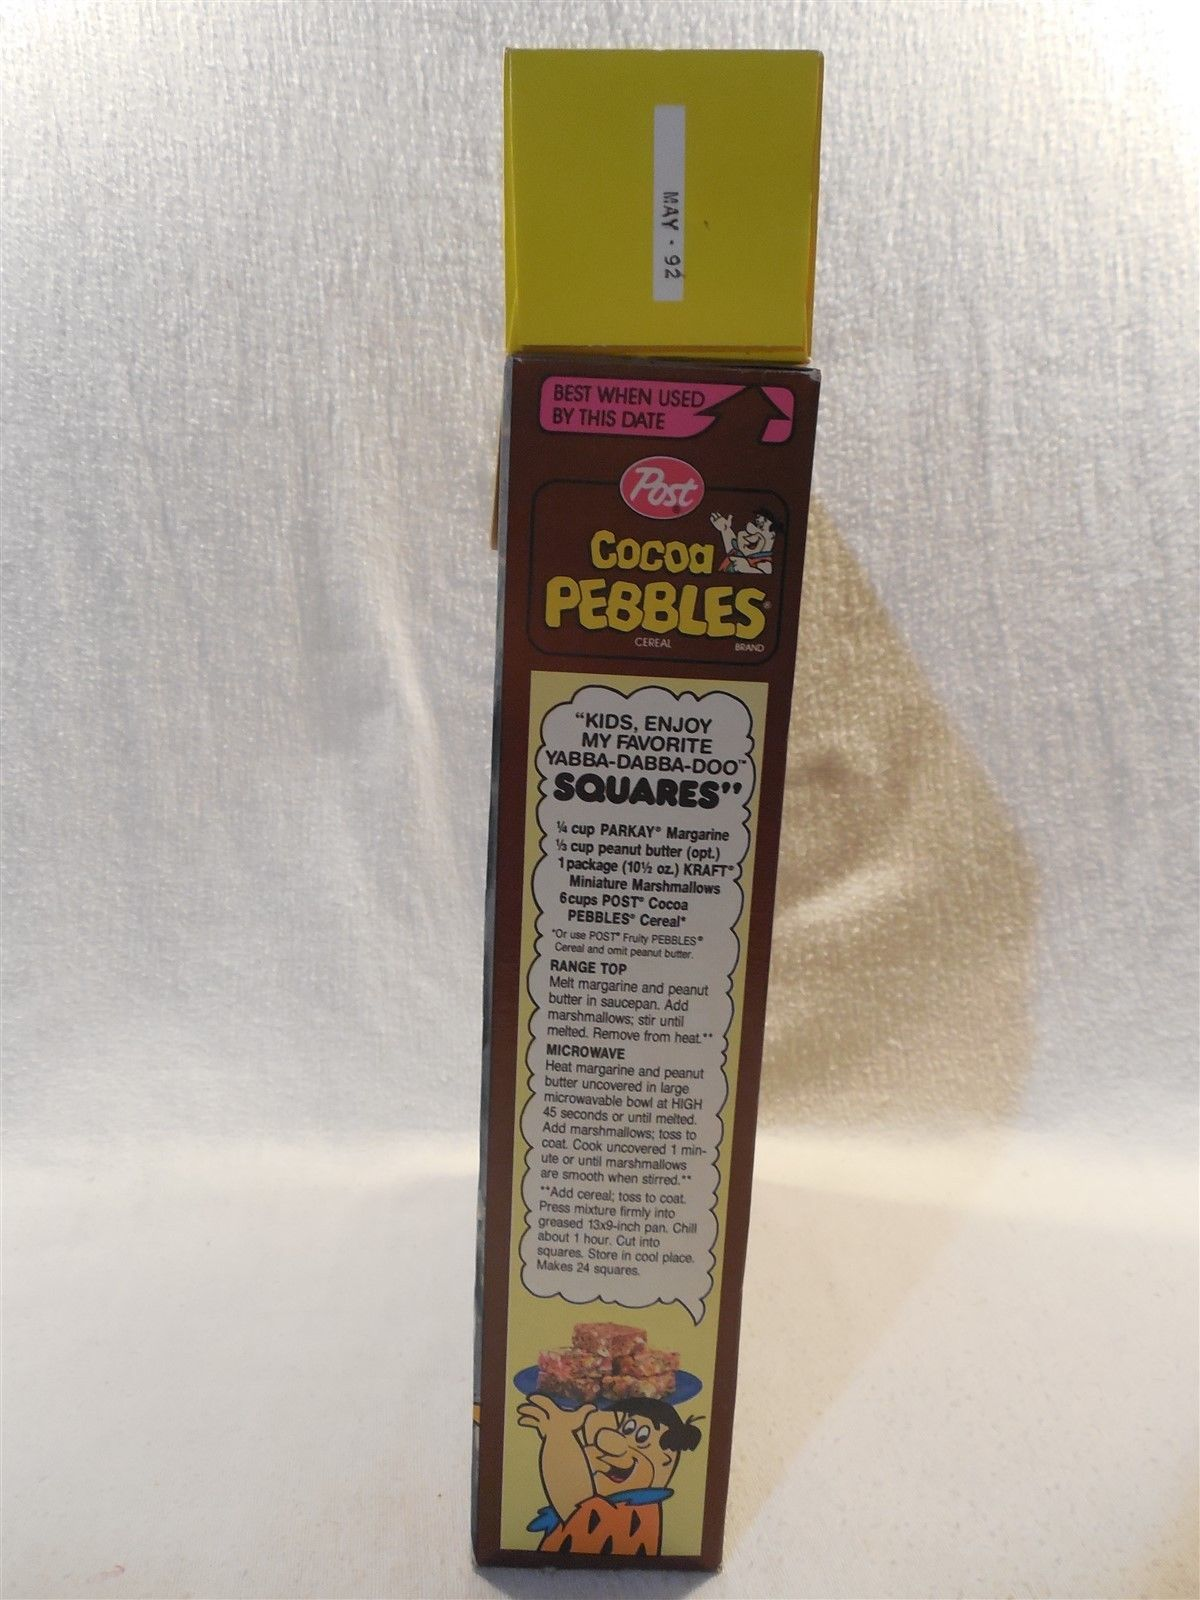 Flintstones 1991 Post Cocoa Pebbles Cereal Box Bedrock Bendable Band Toy Fred